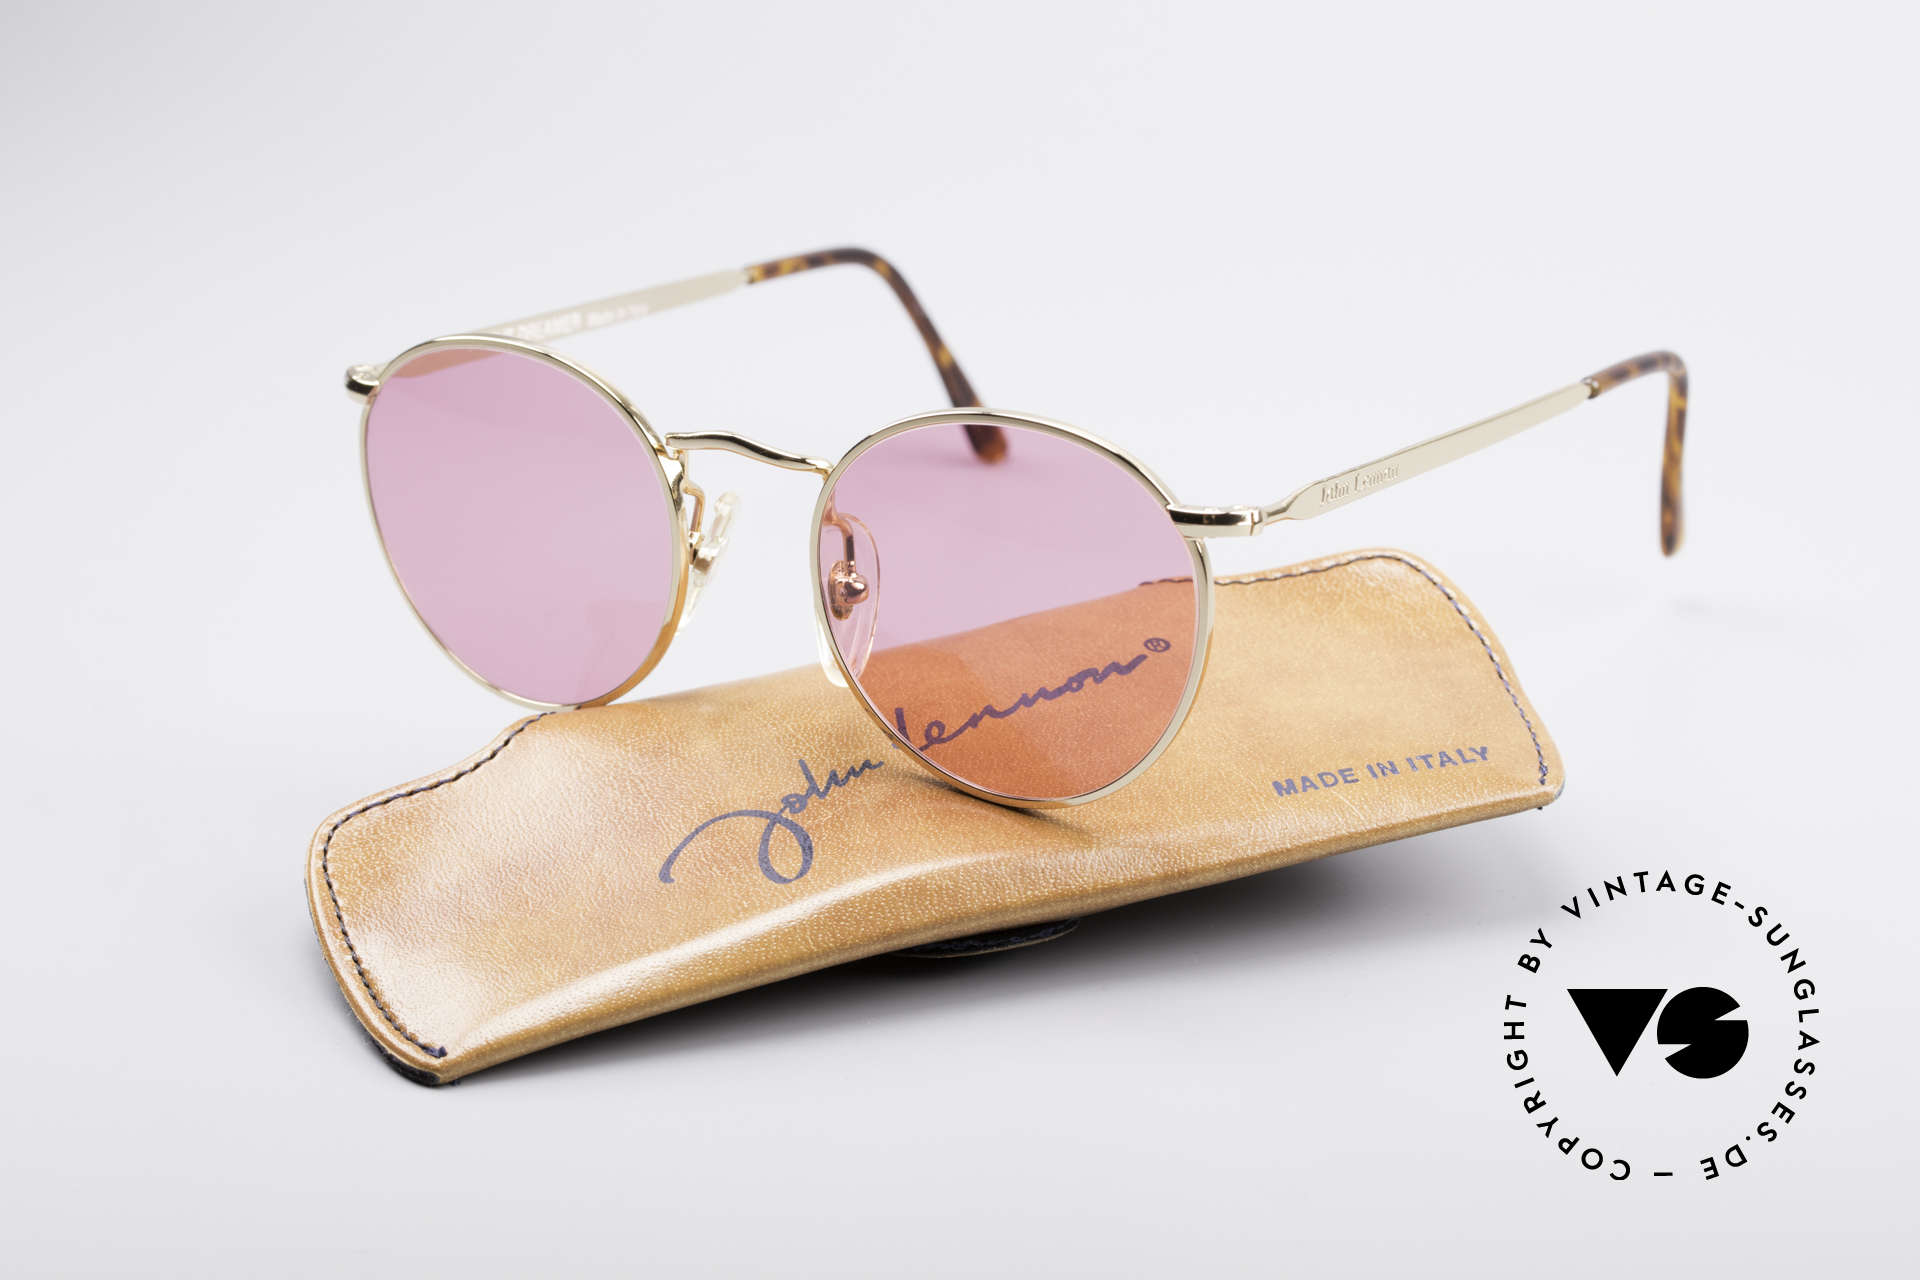 John Lennon - The Dreamer X-Small Pink Vintage Glasses, never worn (like all our vintage John Lennon sunglasses), Made for Men and Women